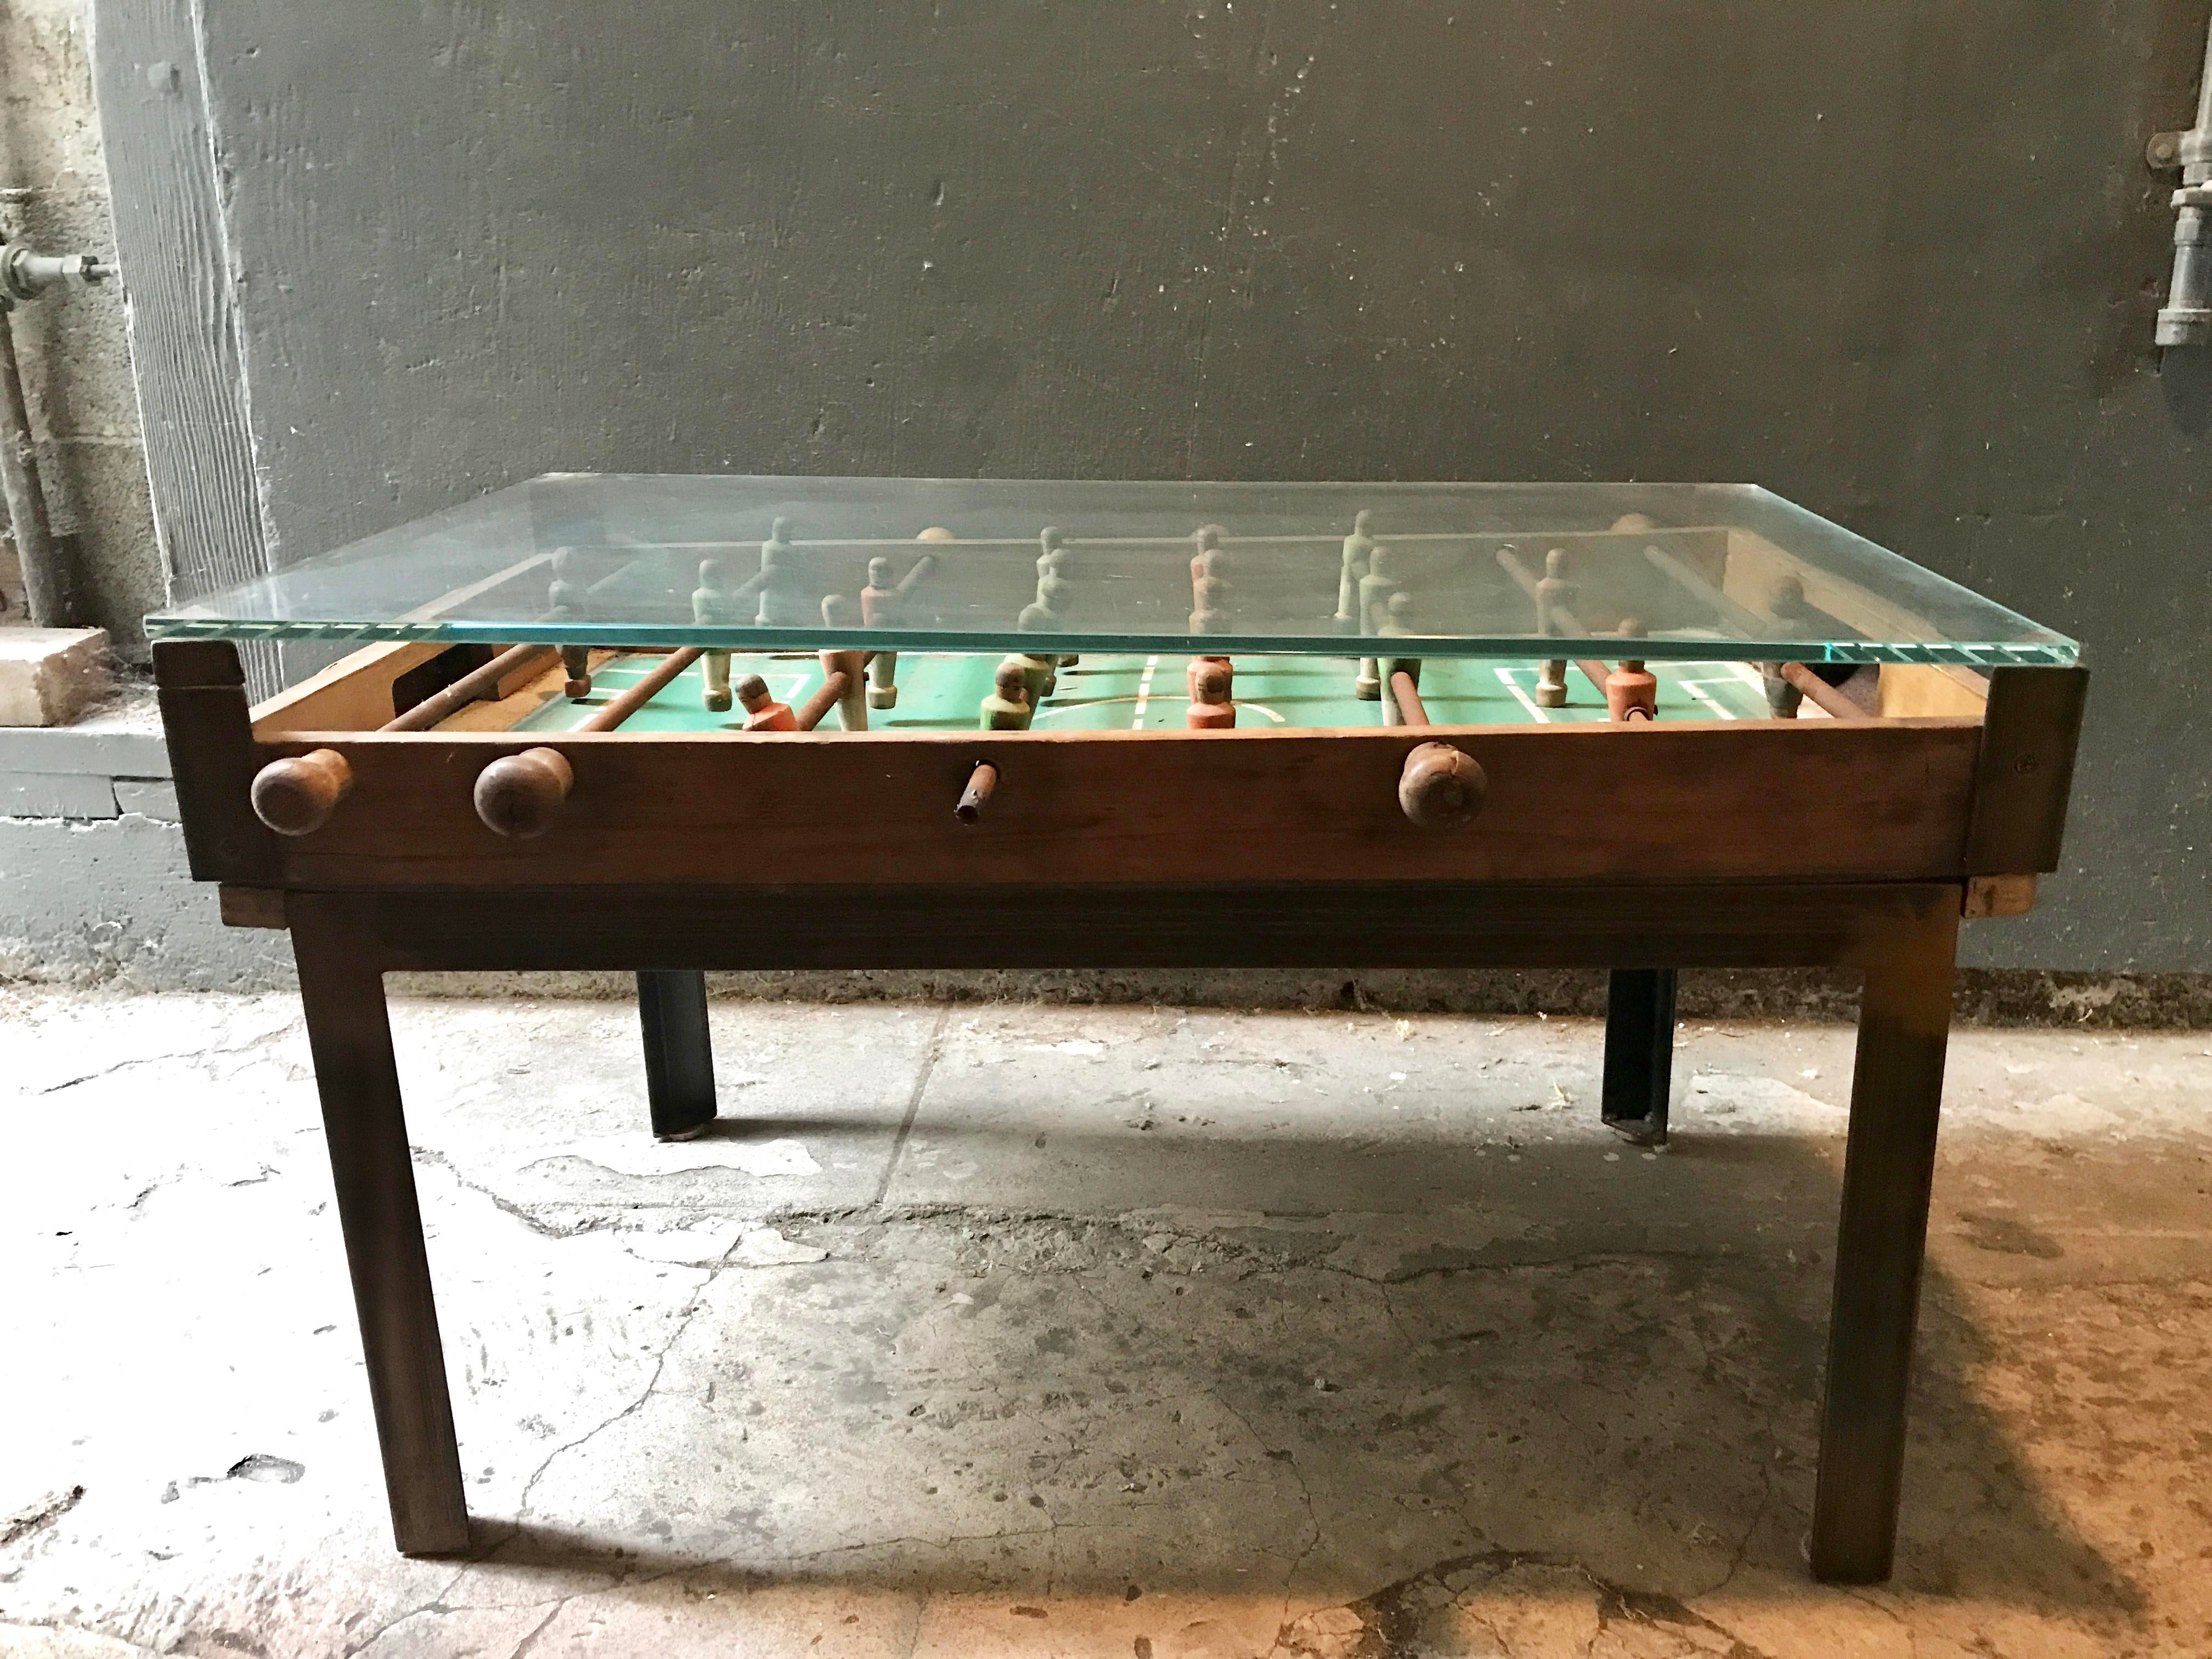 An Antique And Rare Foosball Table Purchased At Big Daddyu0027s Antique Store  On 18th Street.